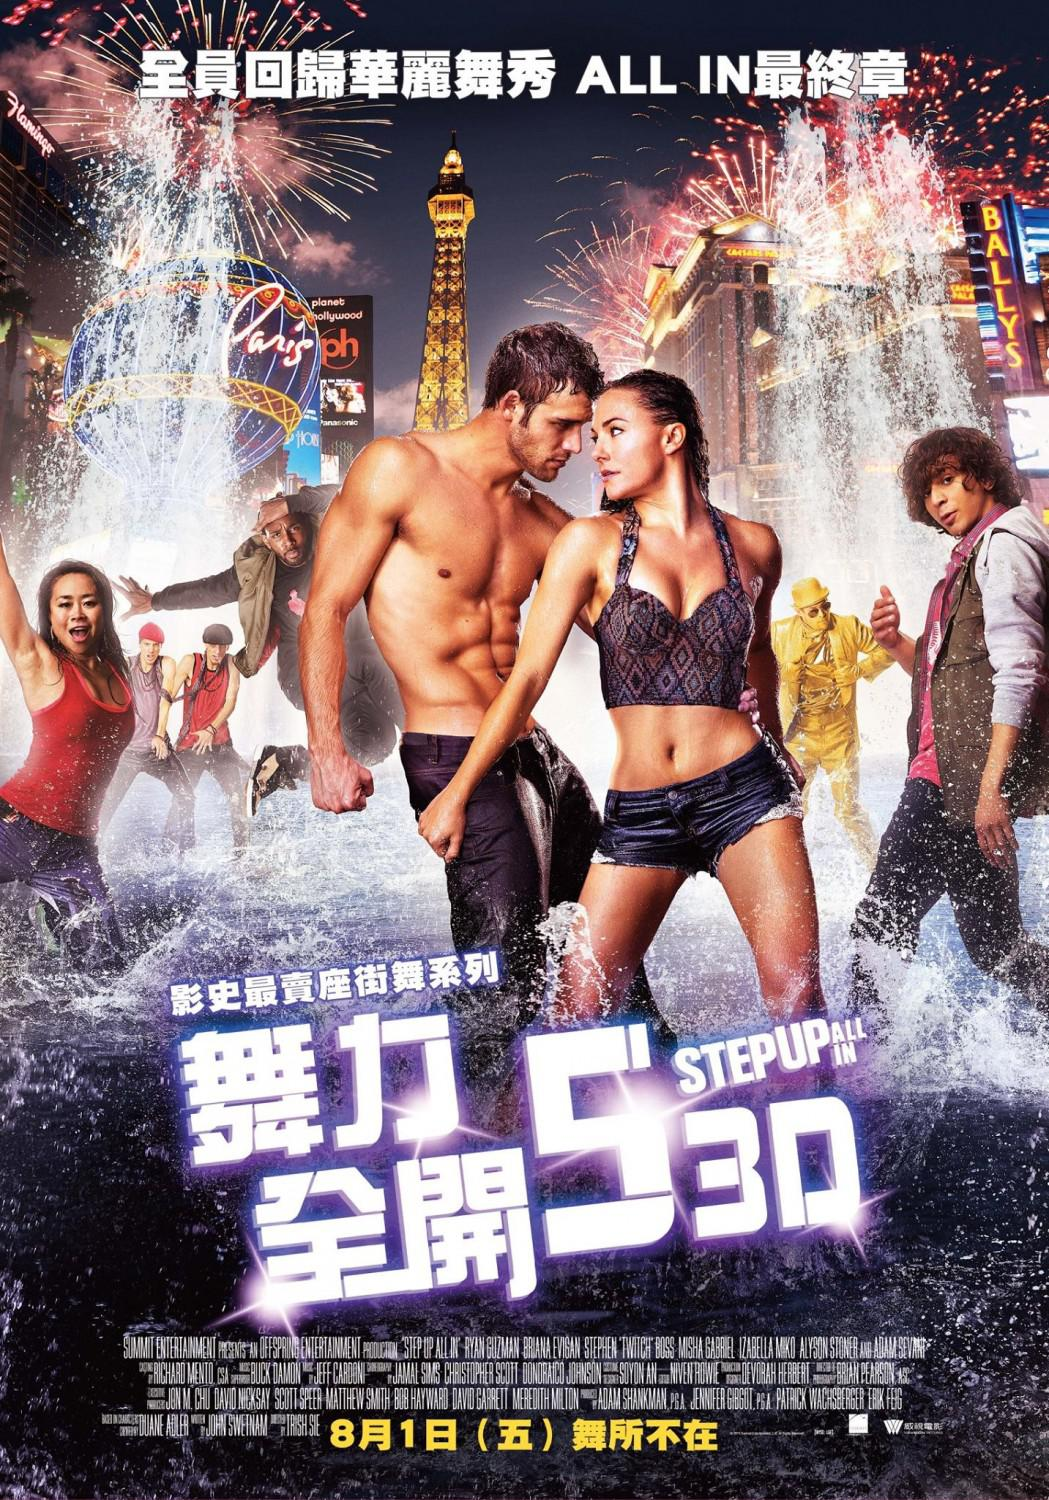 Step Up all in - film poster